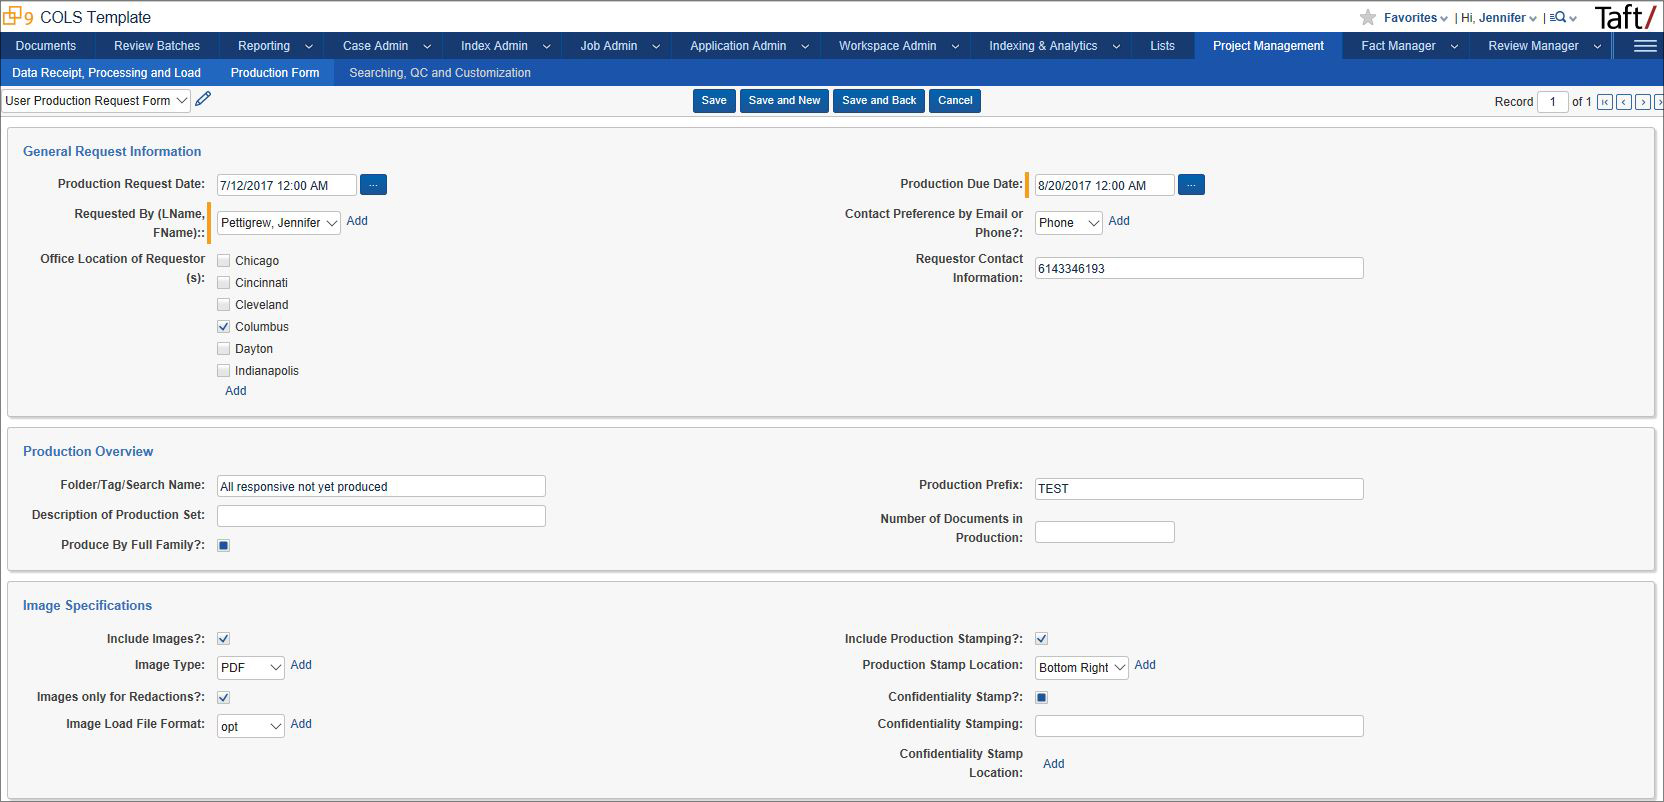 Taft Law: Taft Project Management Application Screenshot